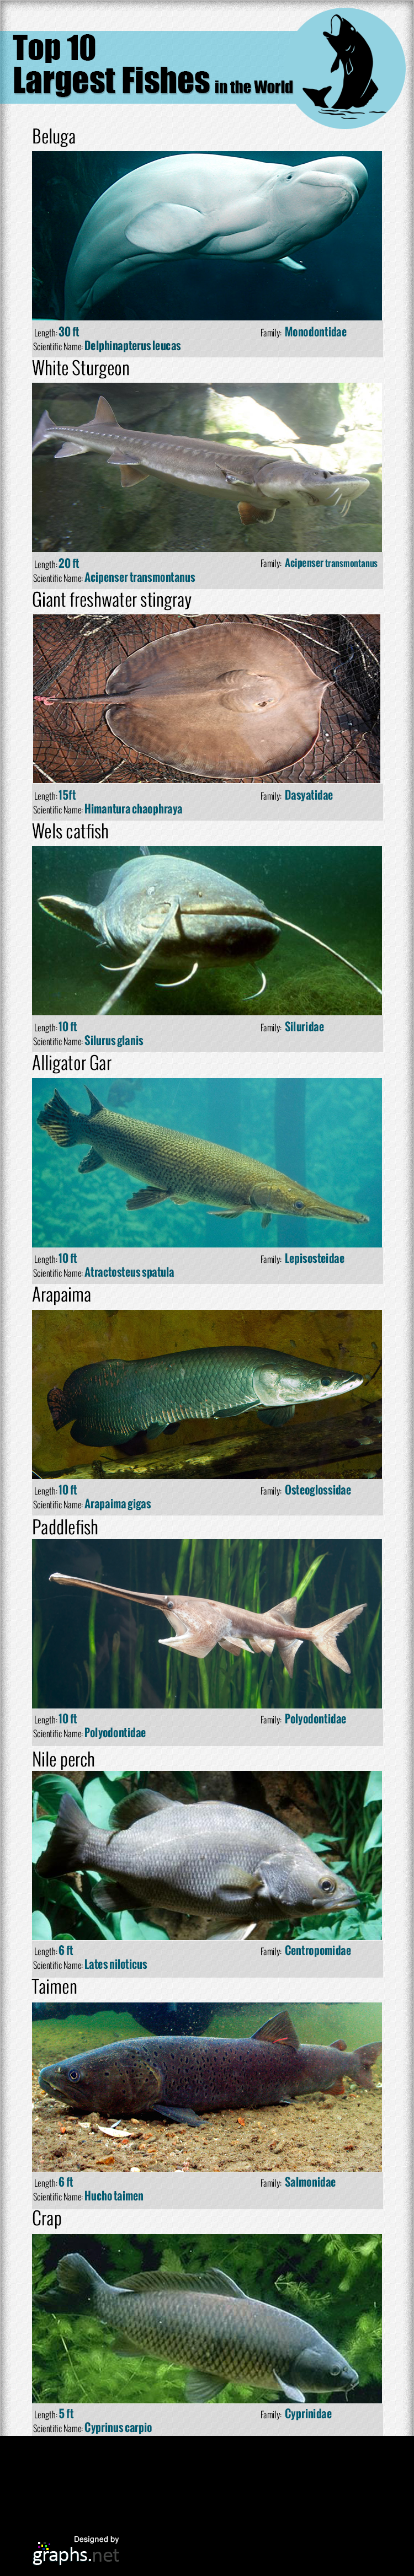 Top-10-Largest-fishes-